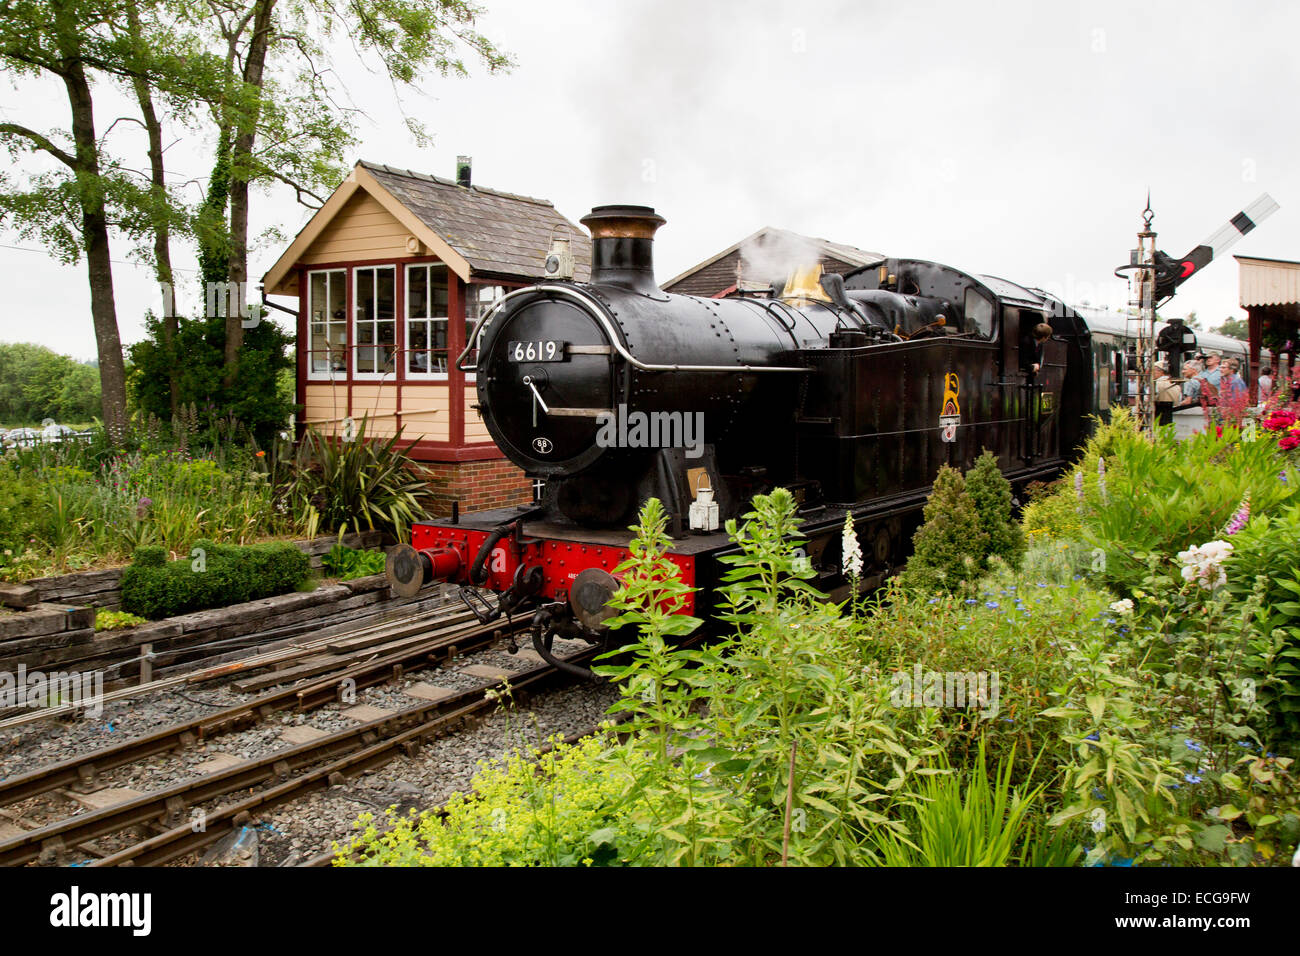 GWR Region 0-6-0 tank engine 6619 waiting to depart with passenger train from Tenterden Railway Station - Stock Image